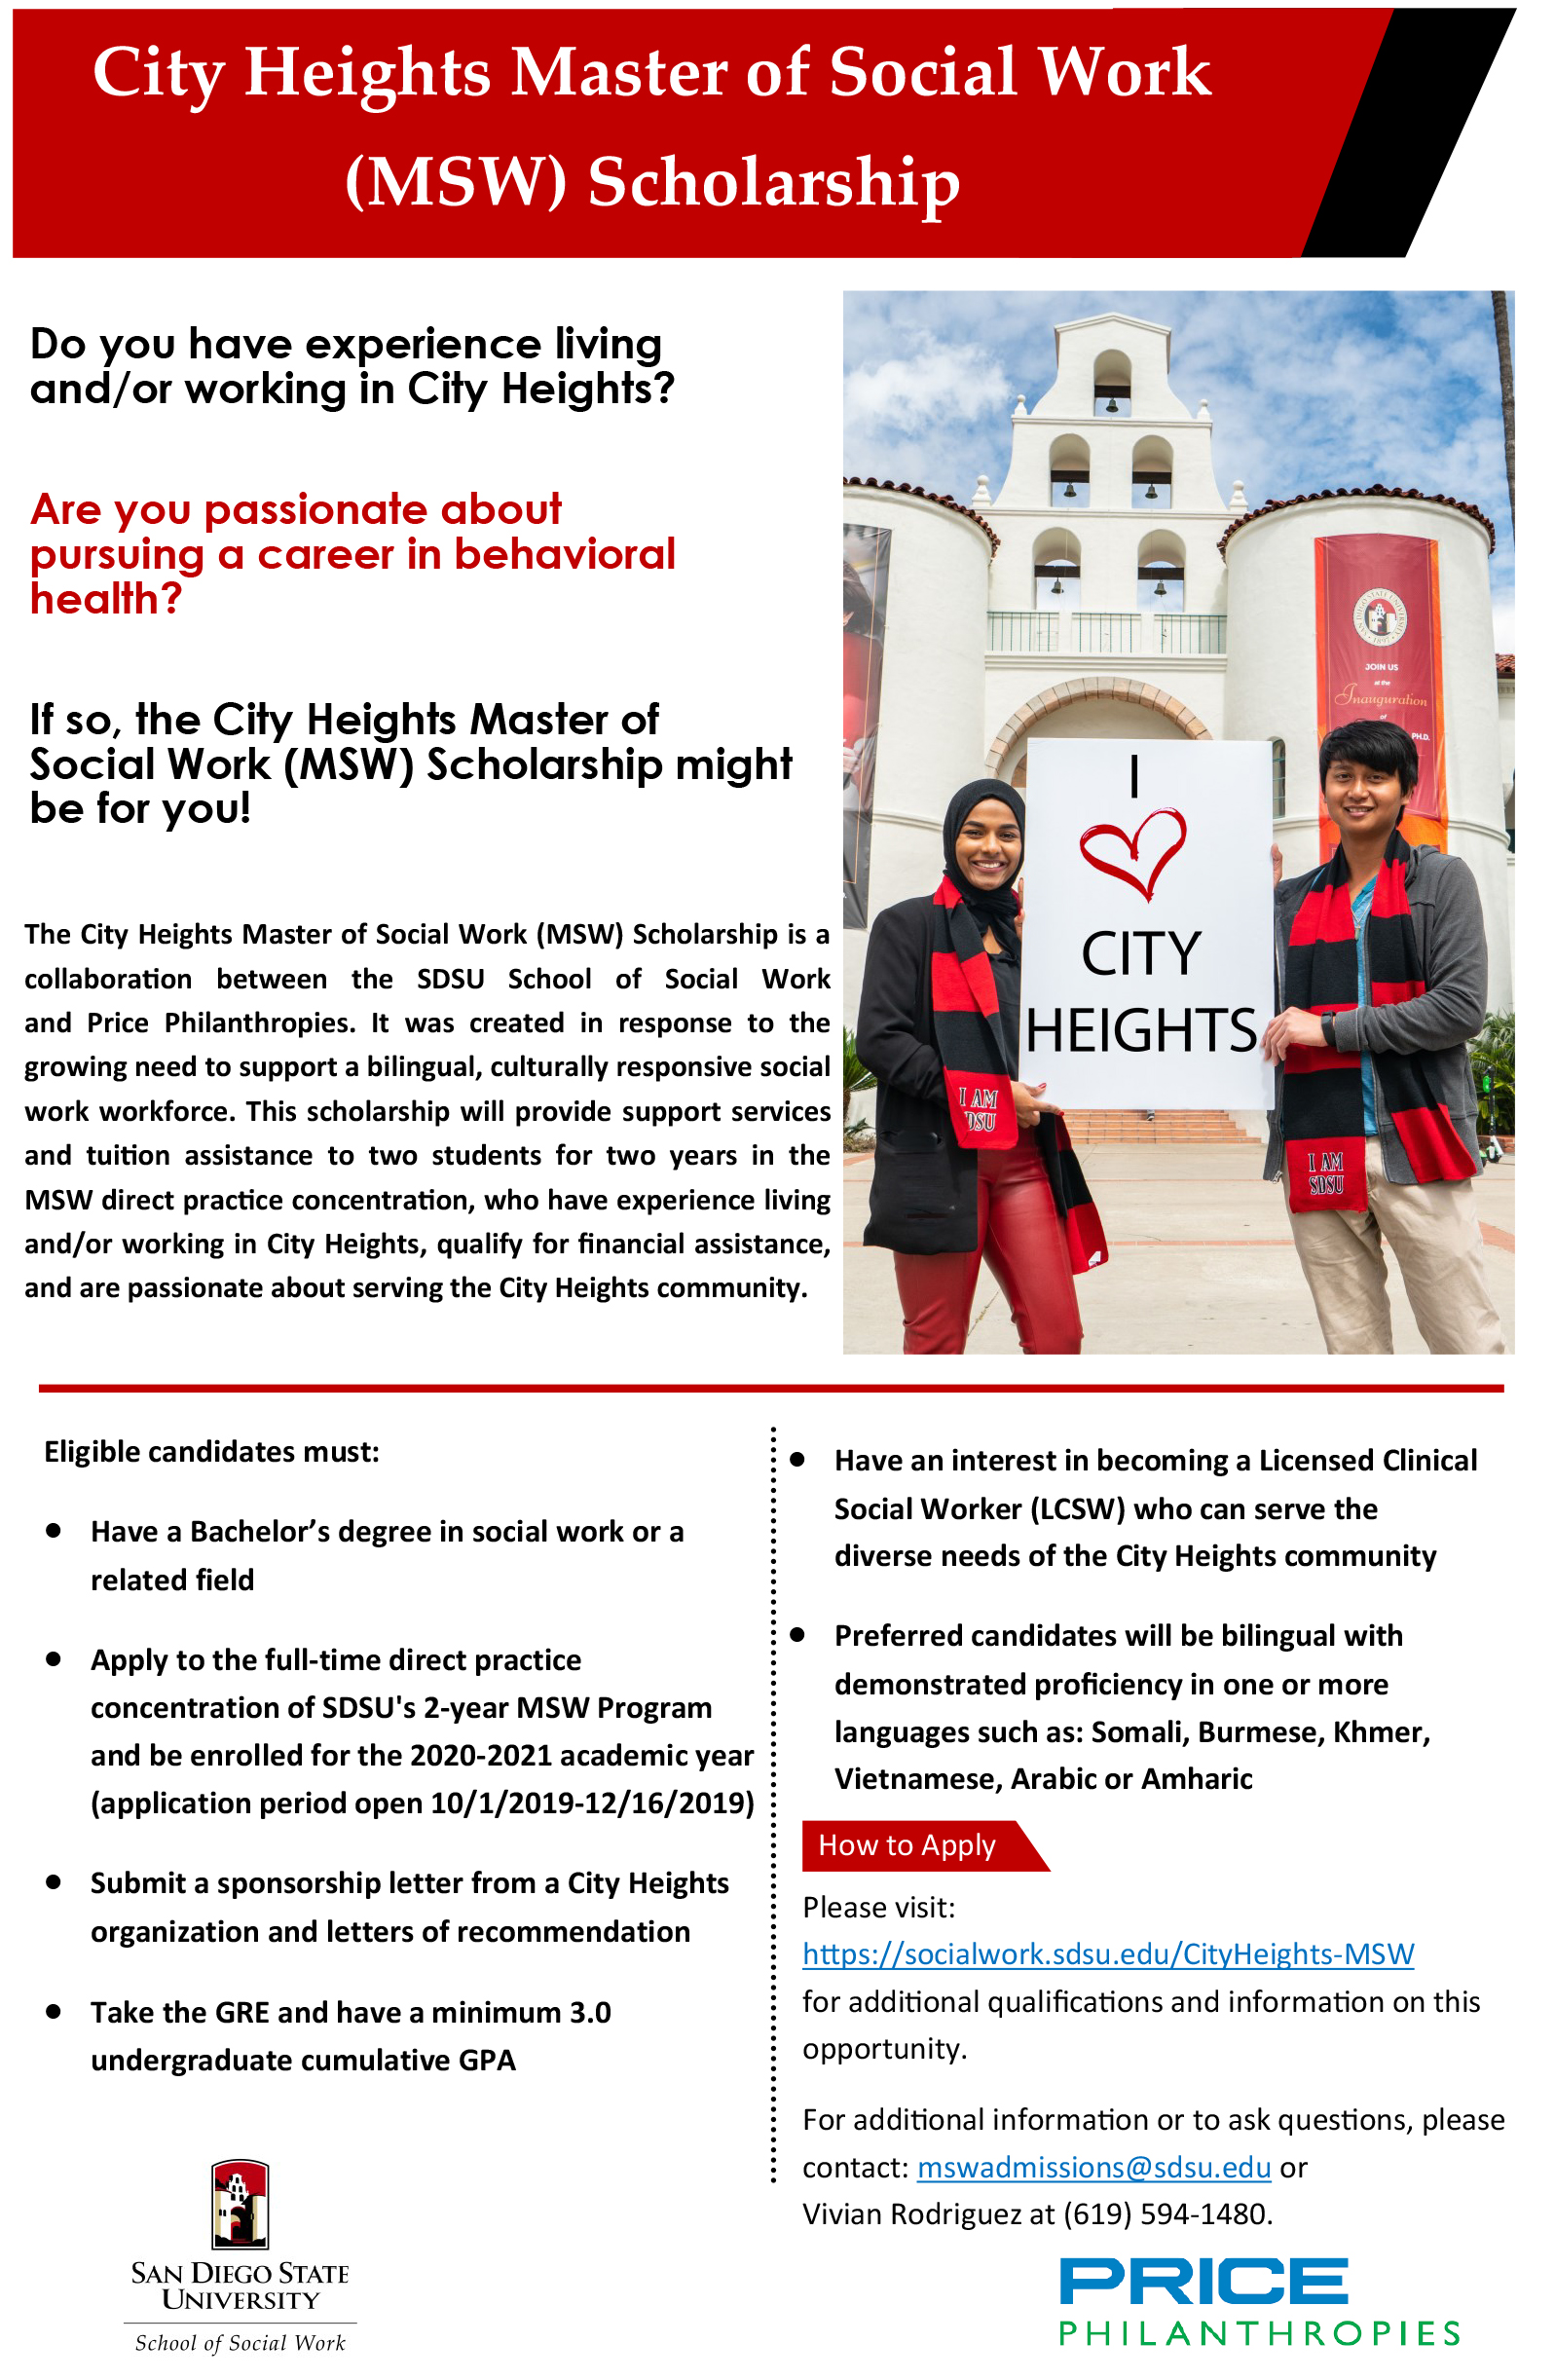 City Heights Master of Social Work Flyer